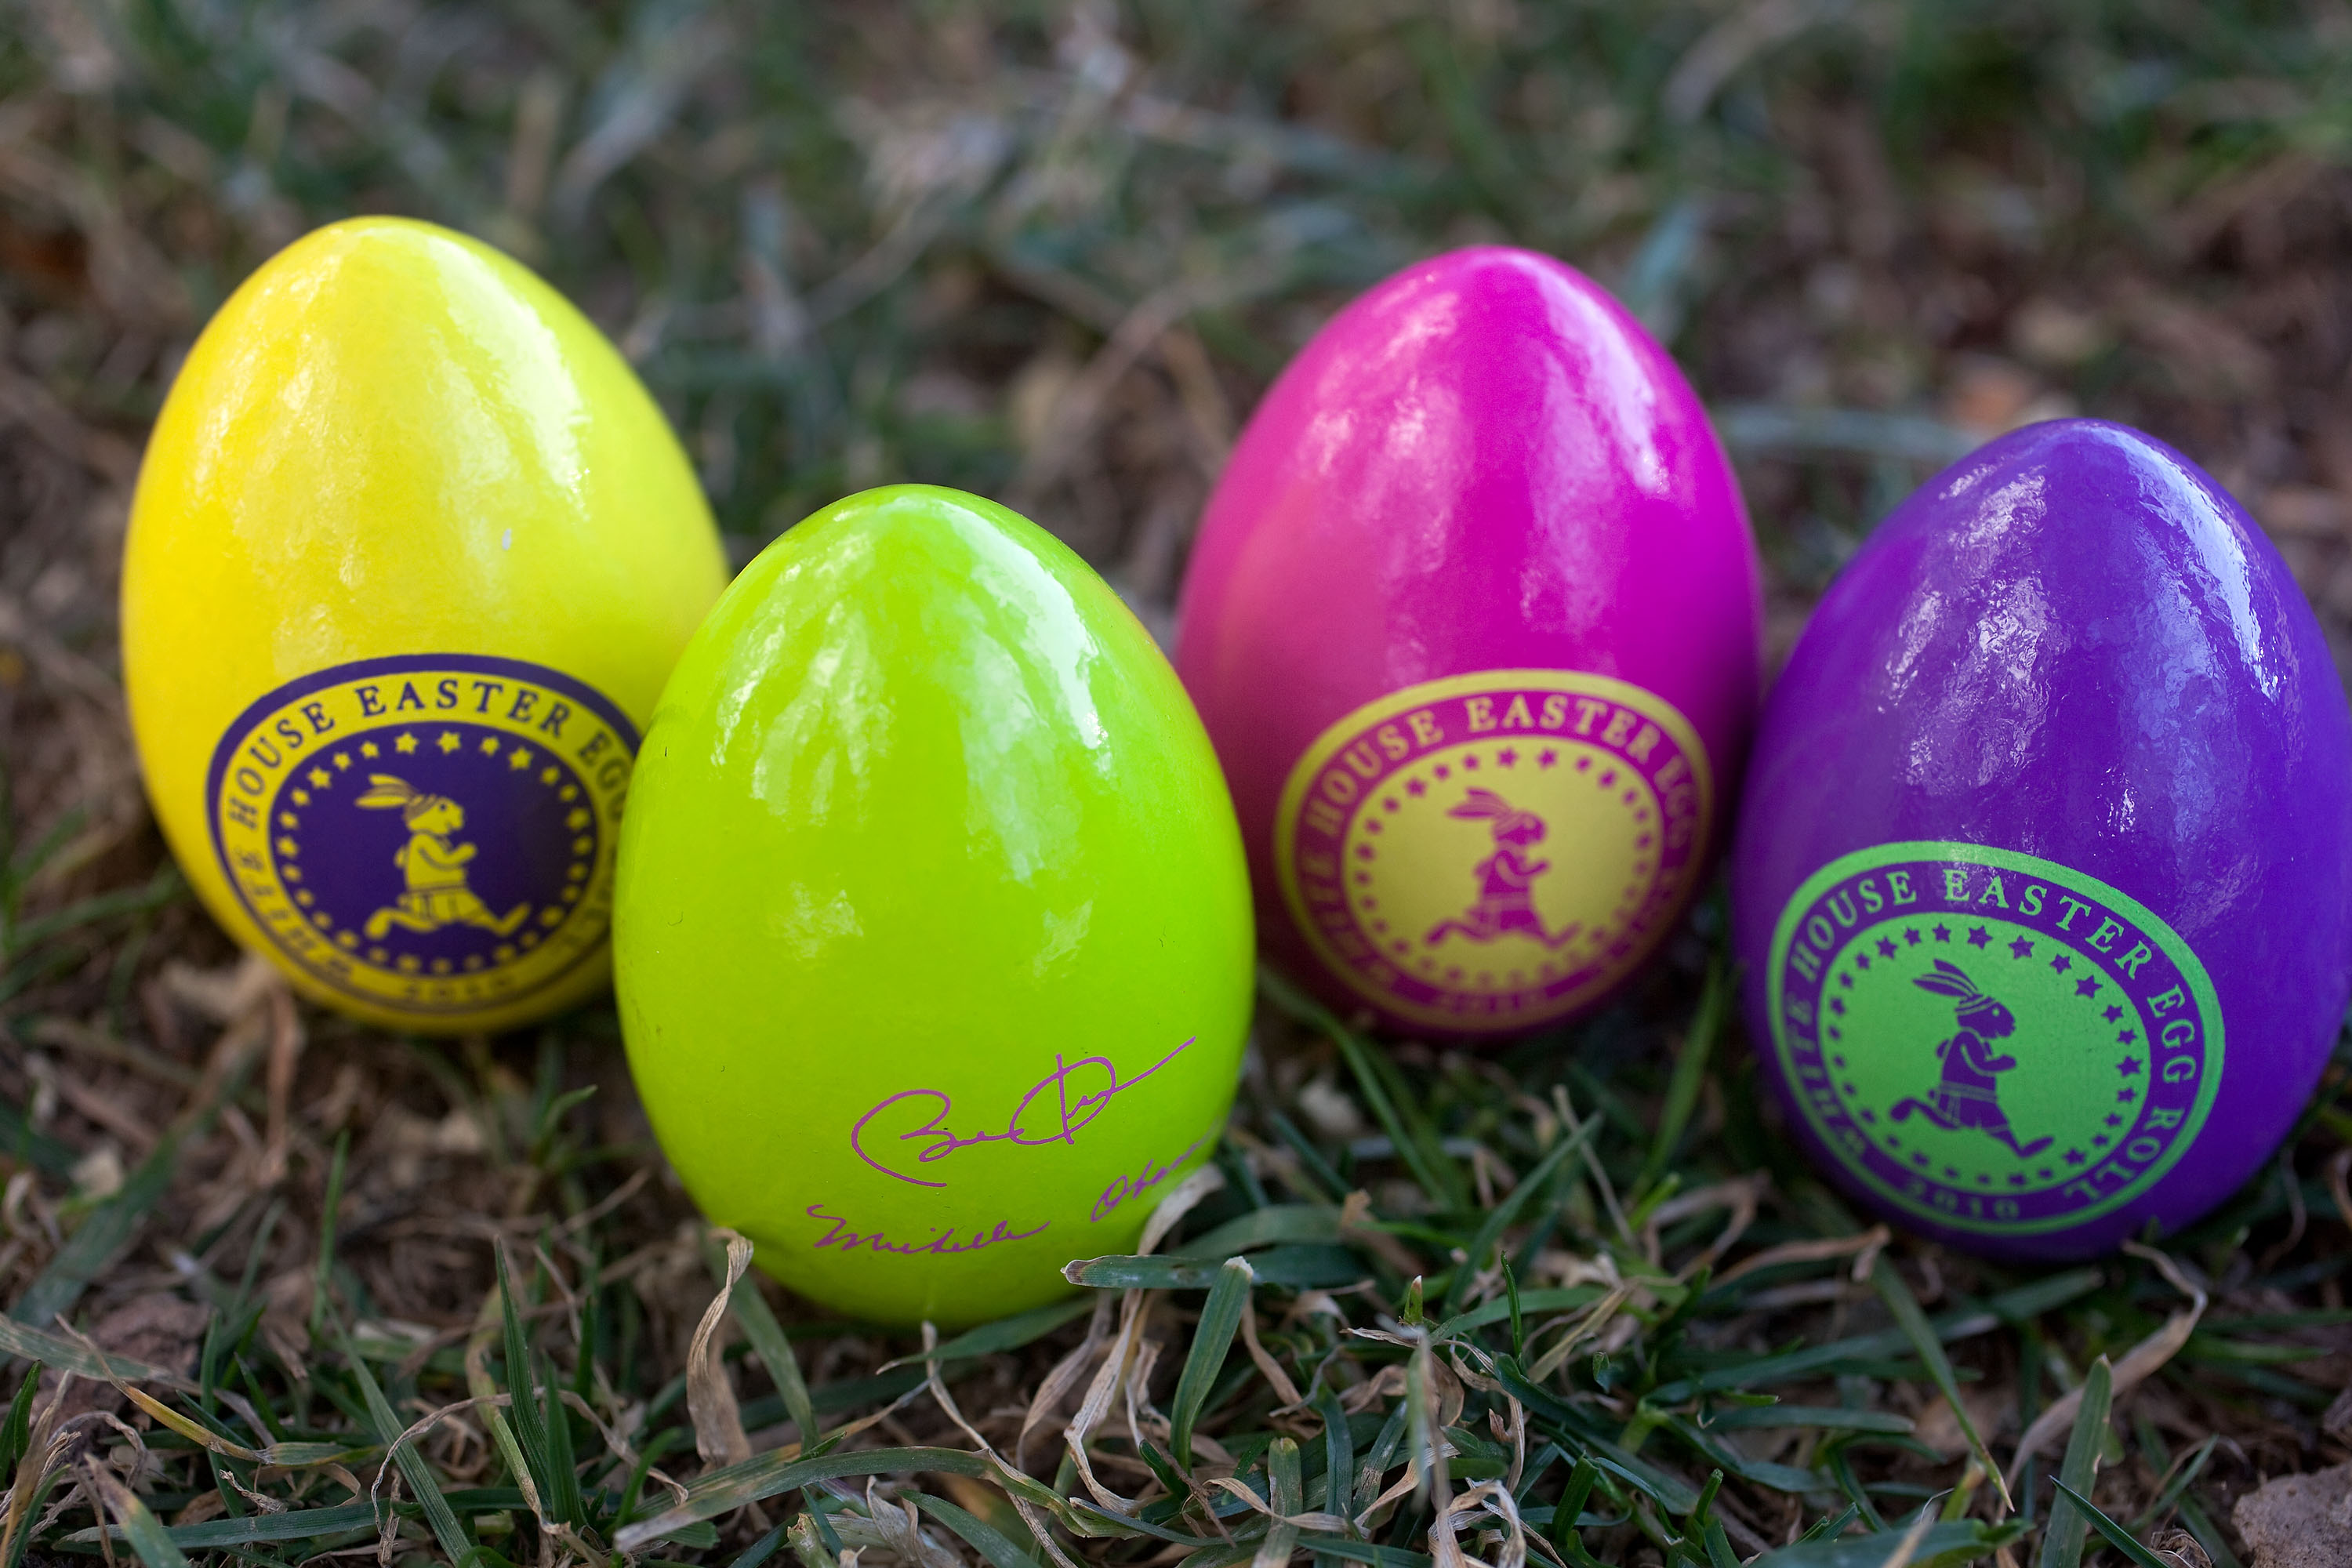 white house easter egg roll lottery odds - image mag